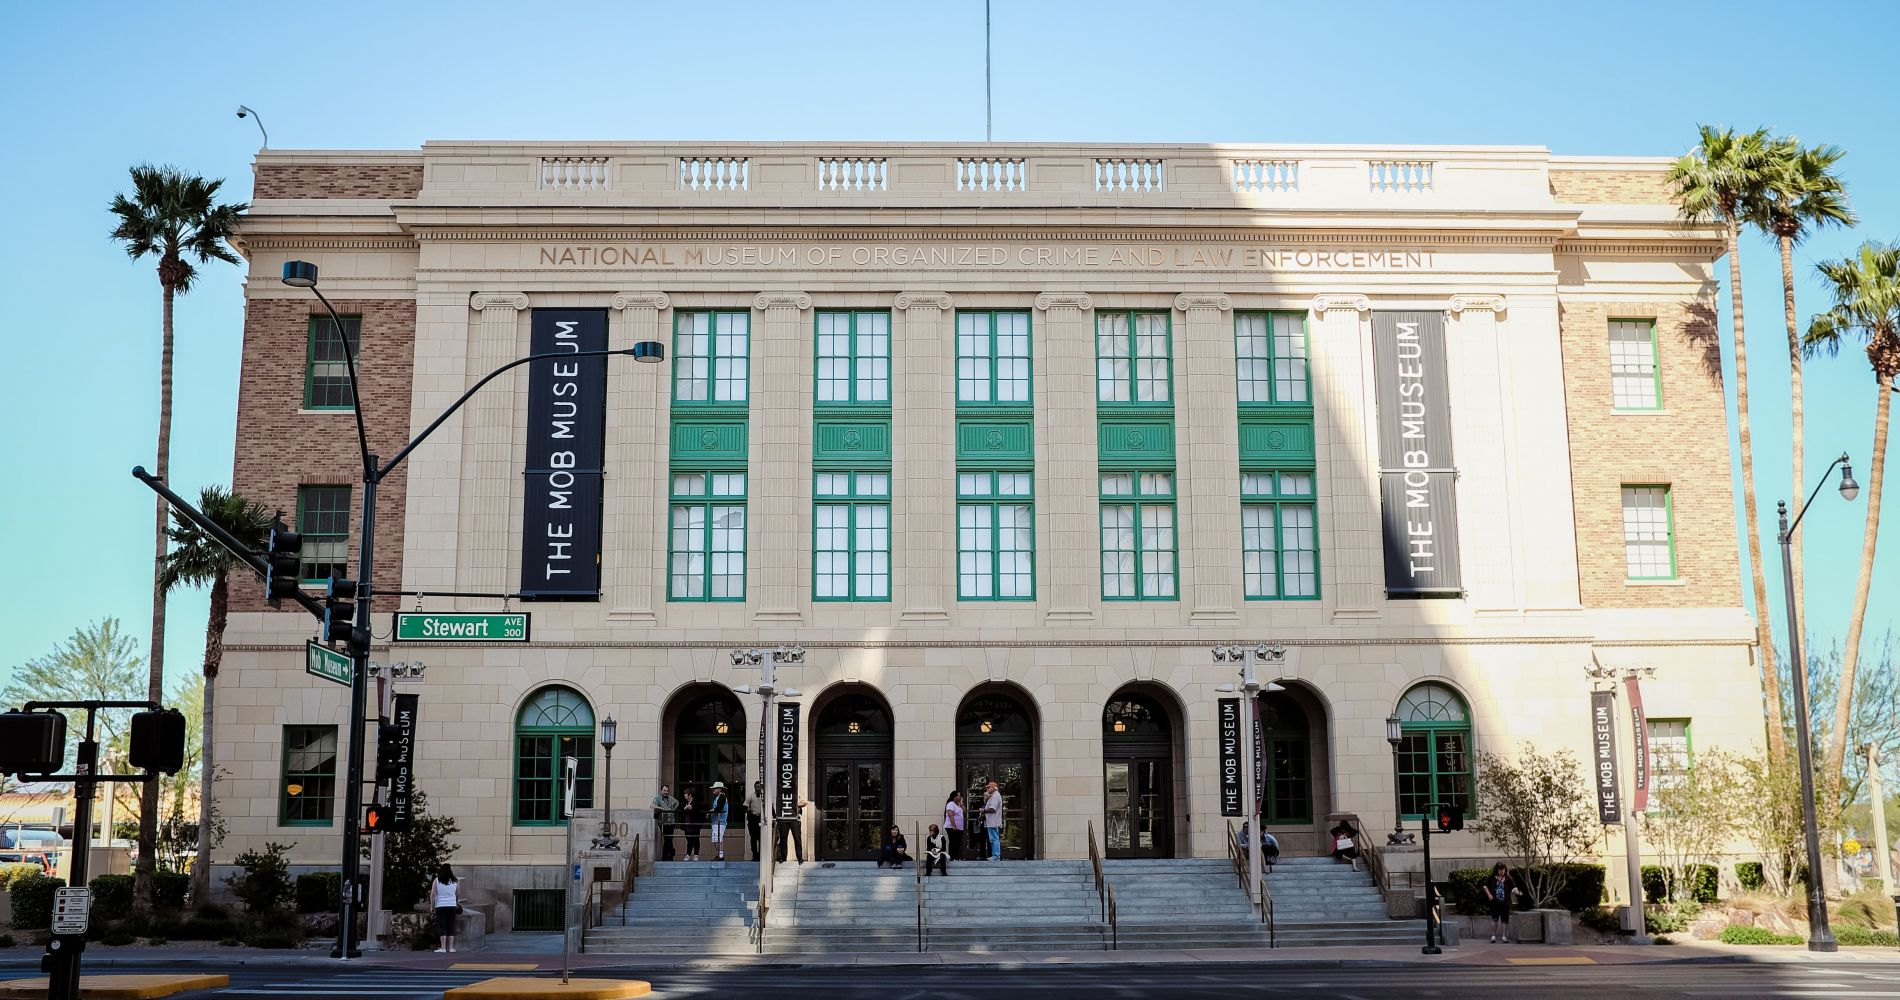 Visit the Mob and other museums of Las Vegas